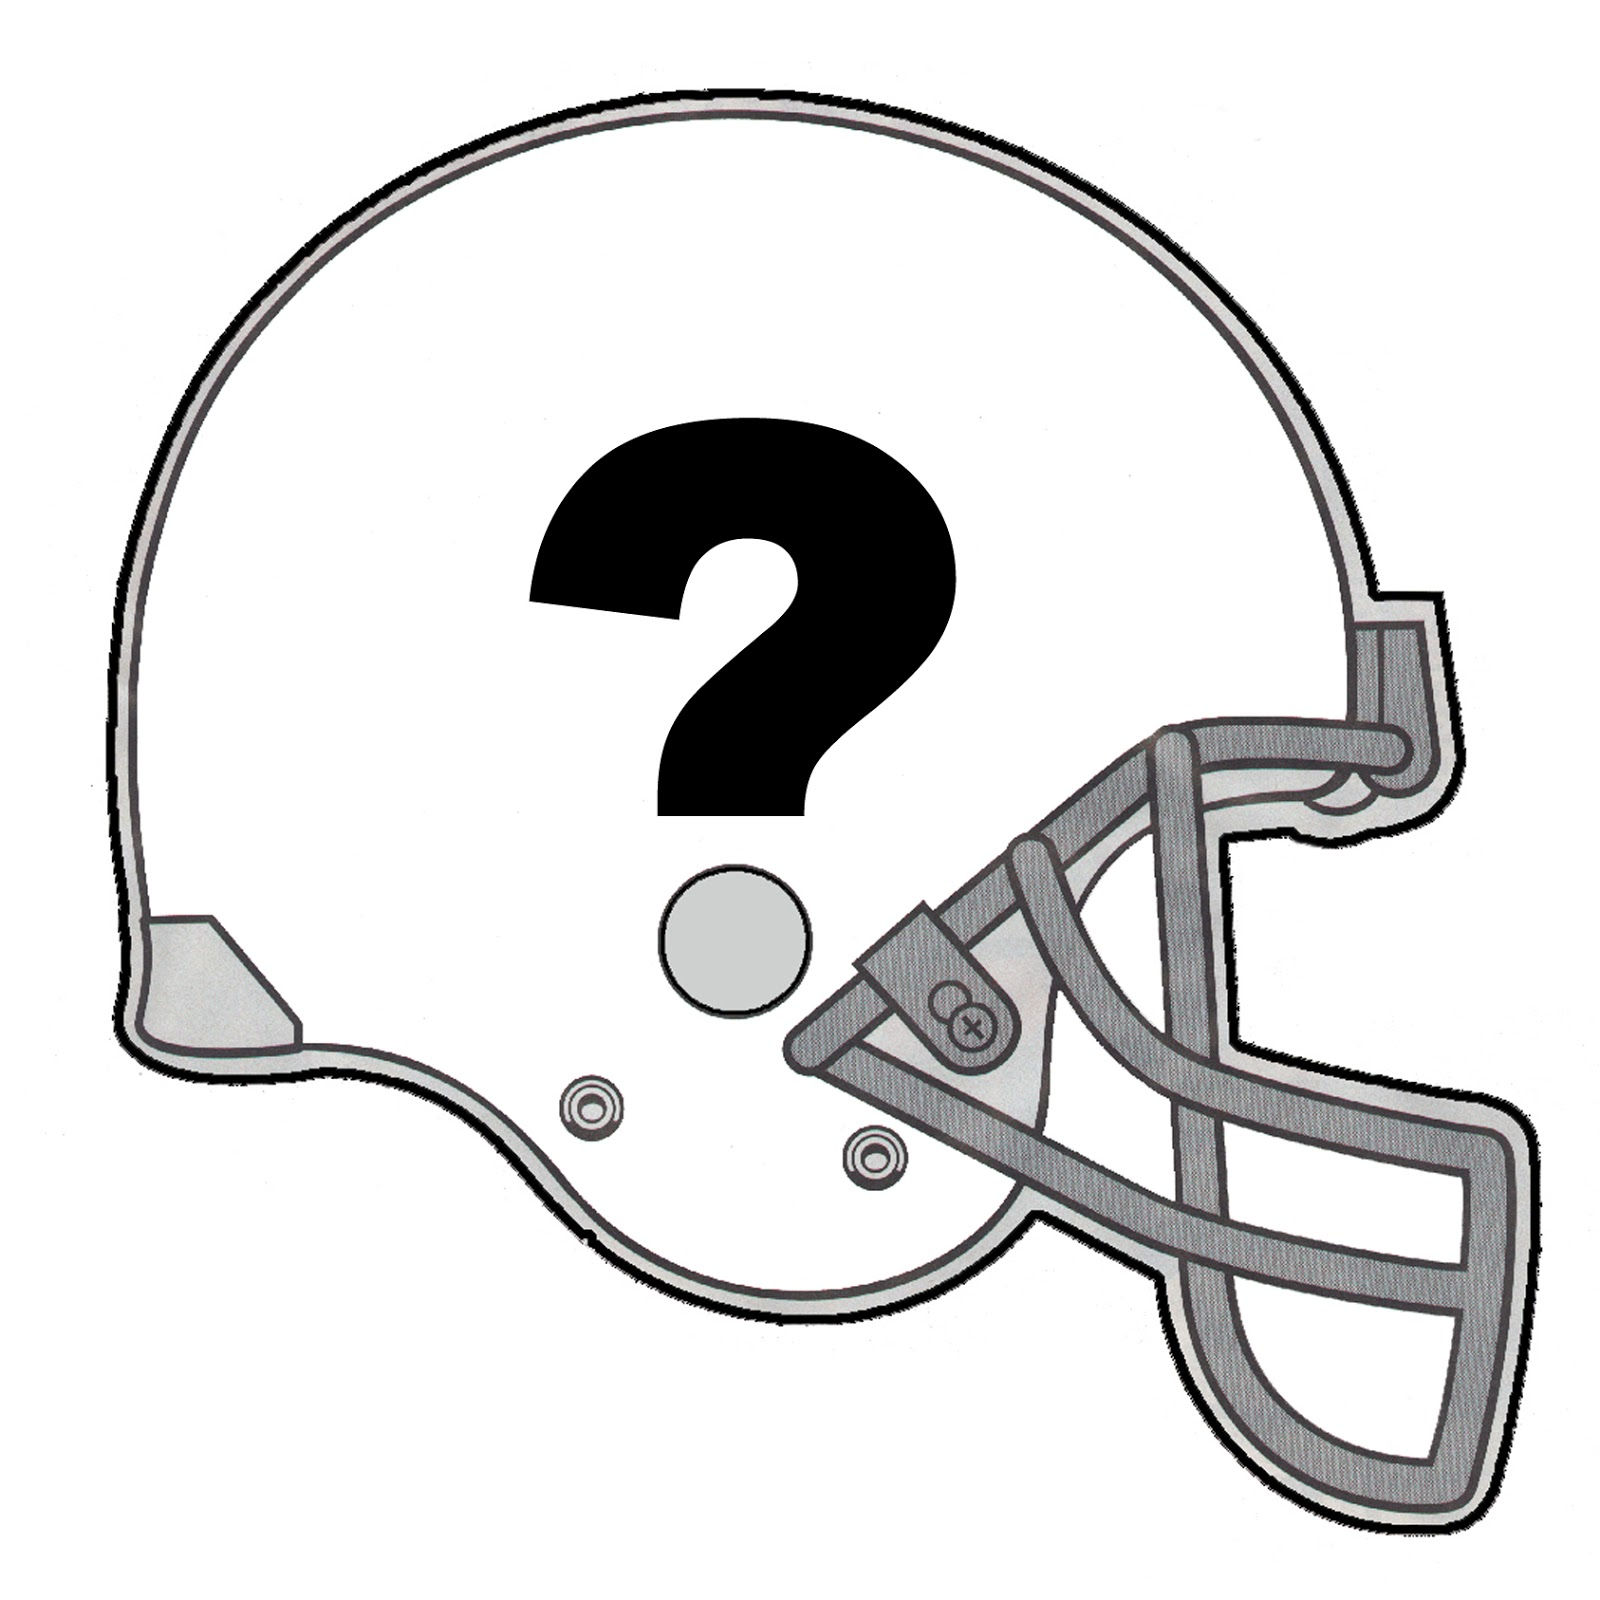 16 blank football helmet free cliparts that you can download to you ...